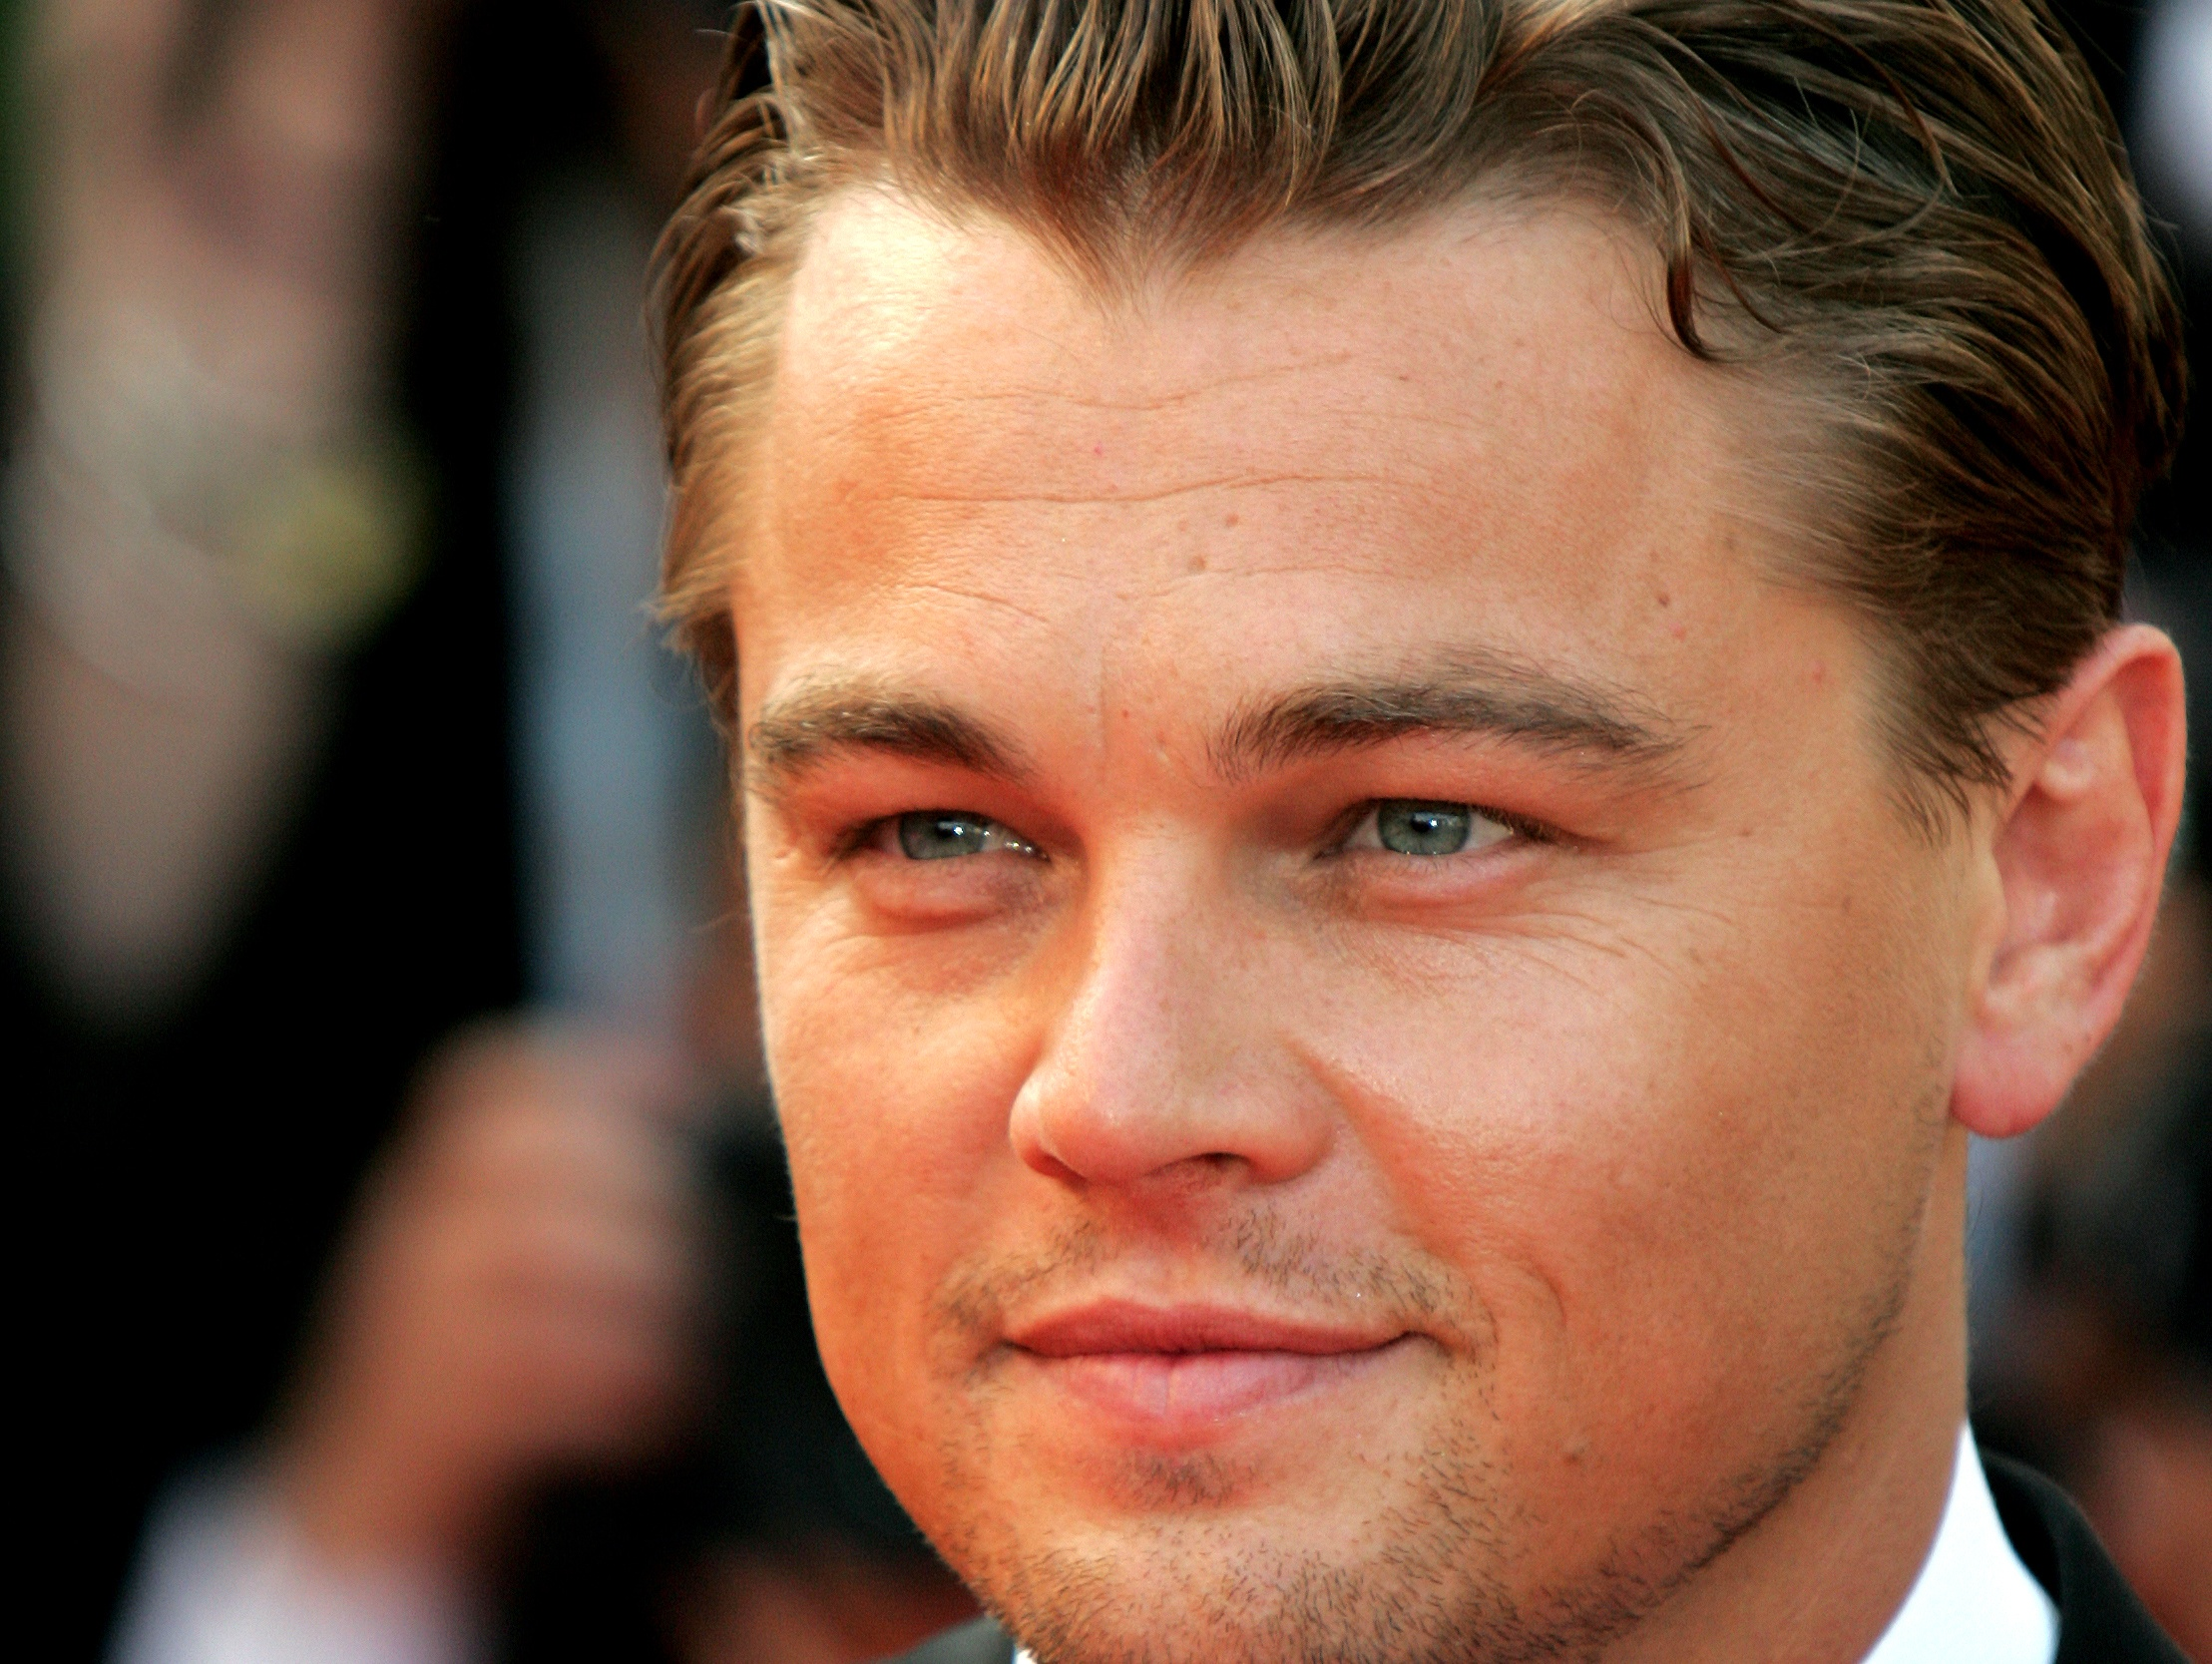 Leonardo DiCaprio is set to star as serial killer H.H. Holmes in the film version of